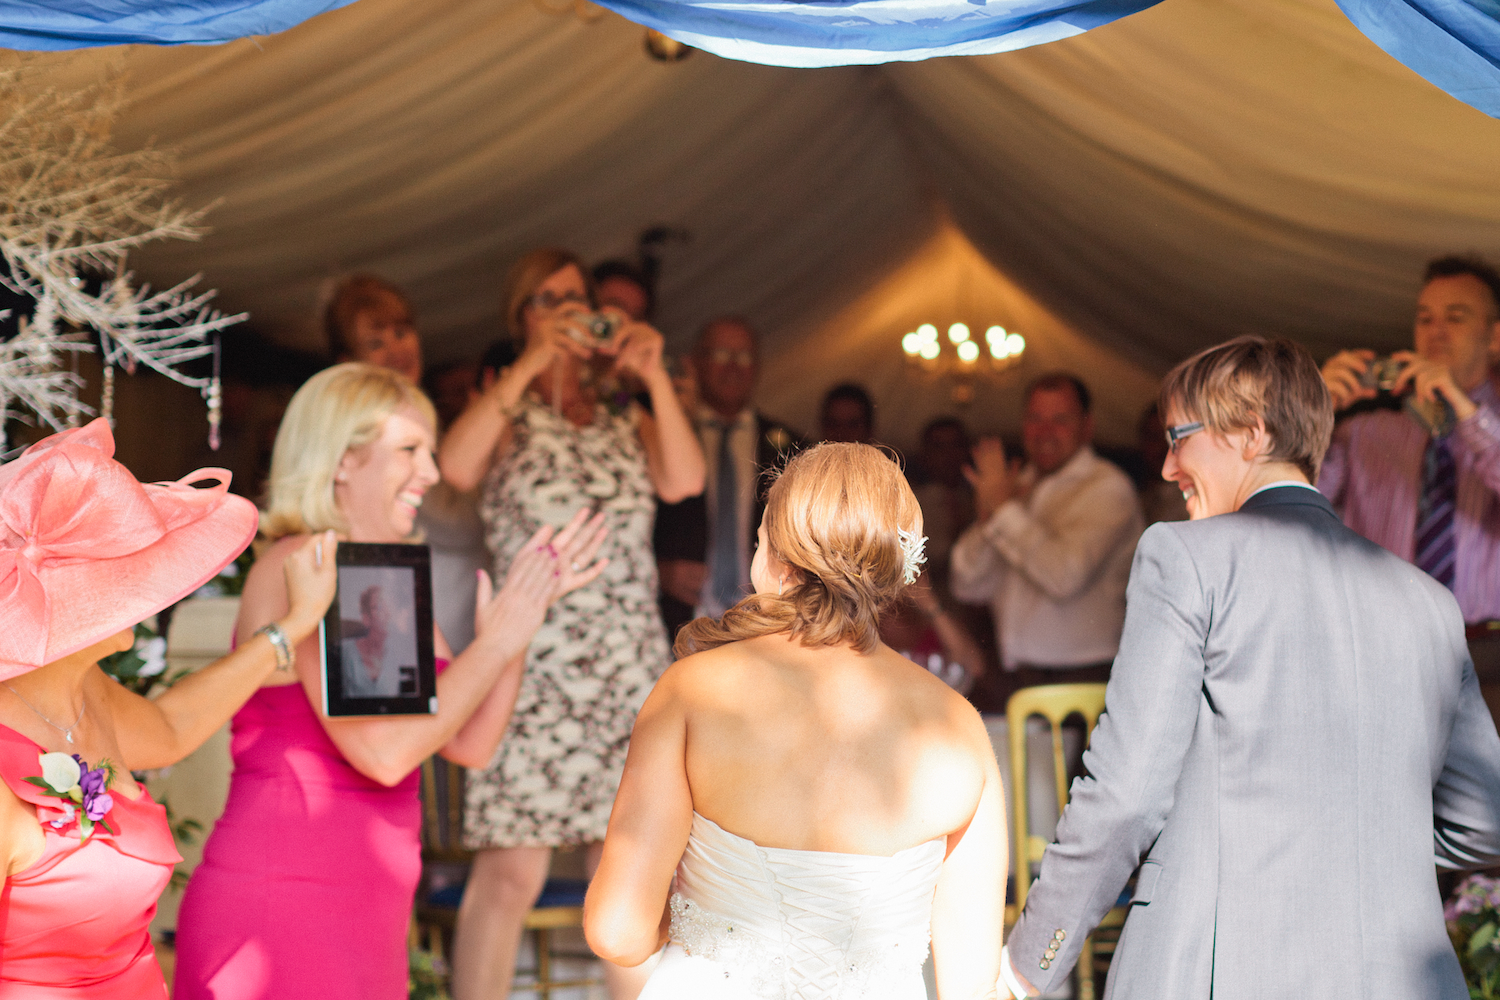 Skype-Wedding-Ongar-Essex3.jpg